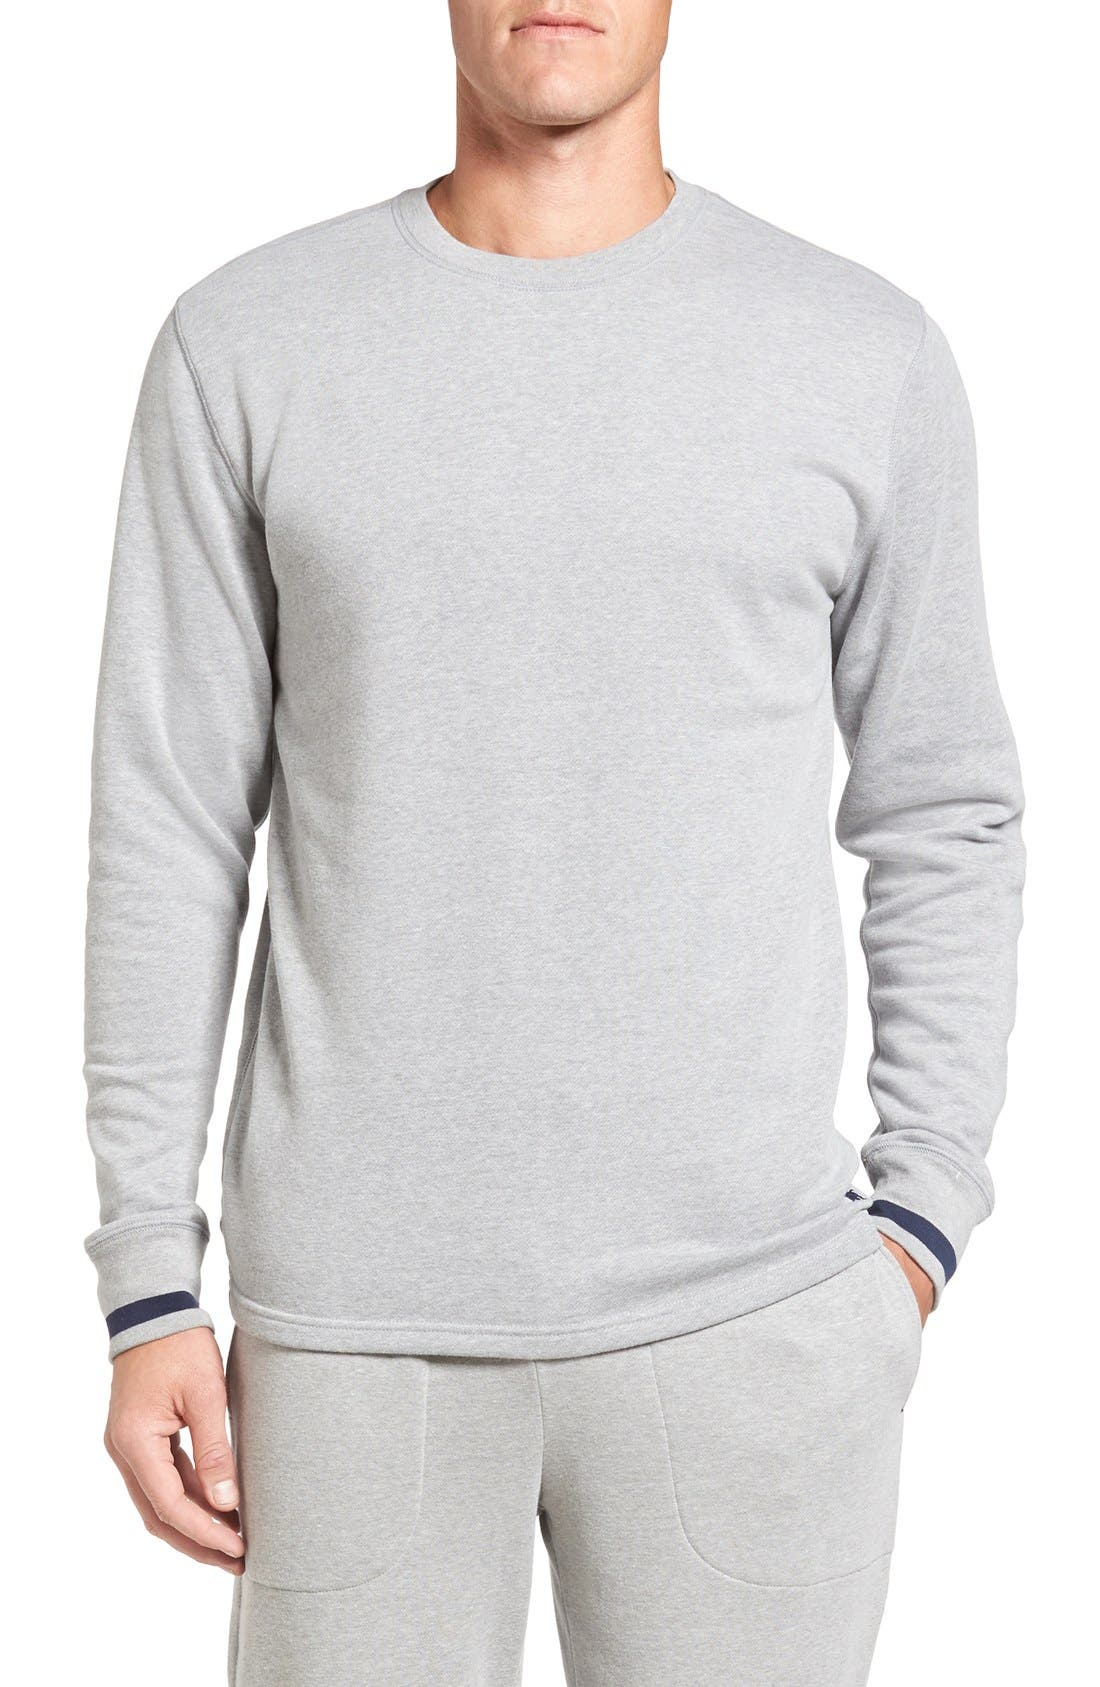 Polo Ralph Lauren Brushed Jersey Cotton Blend Crewneck Sweatshirt